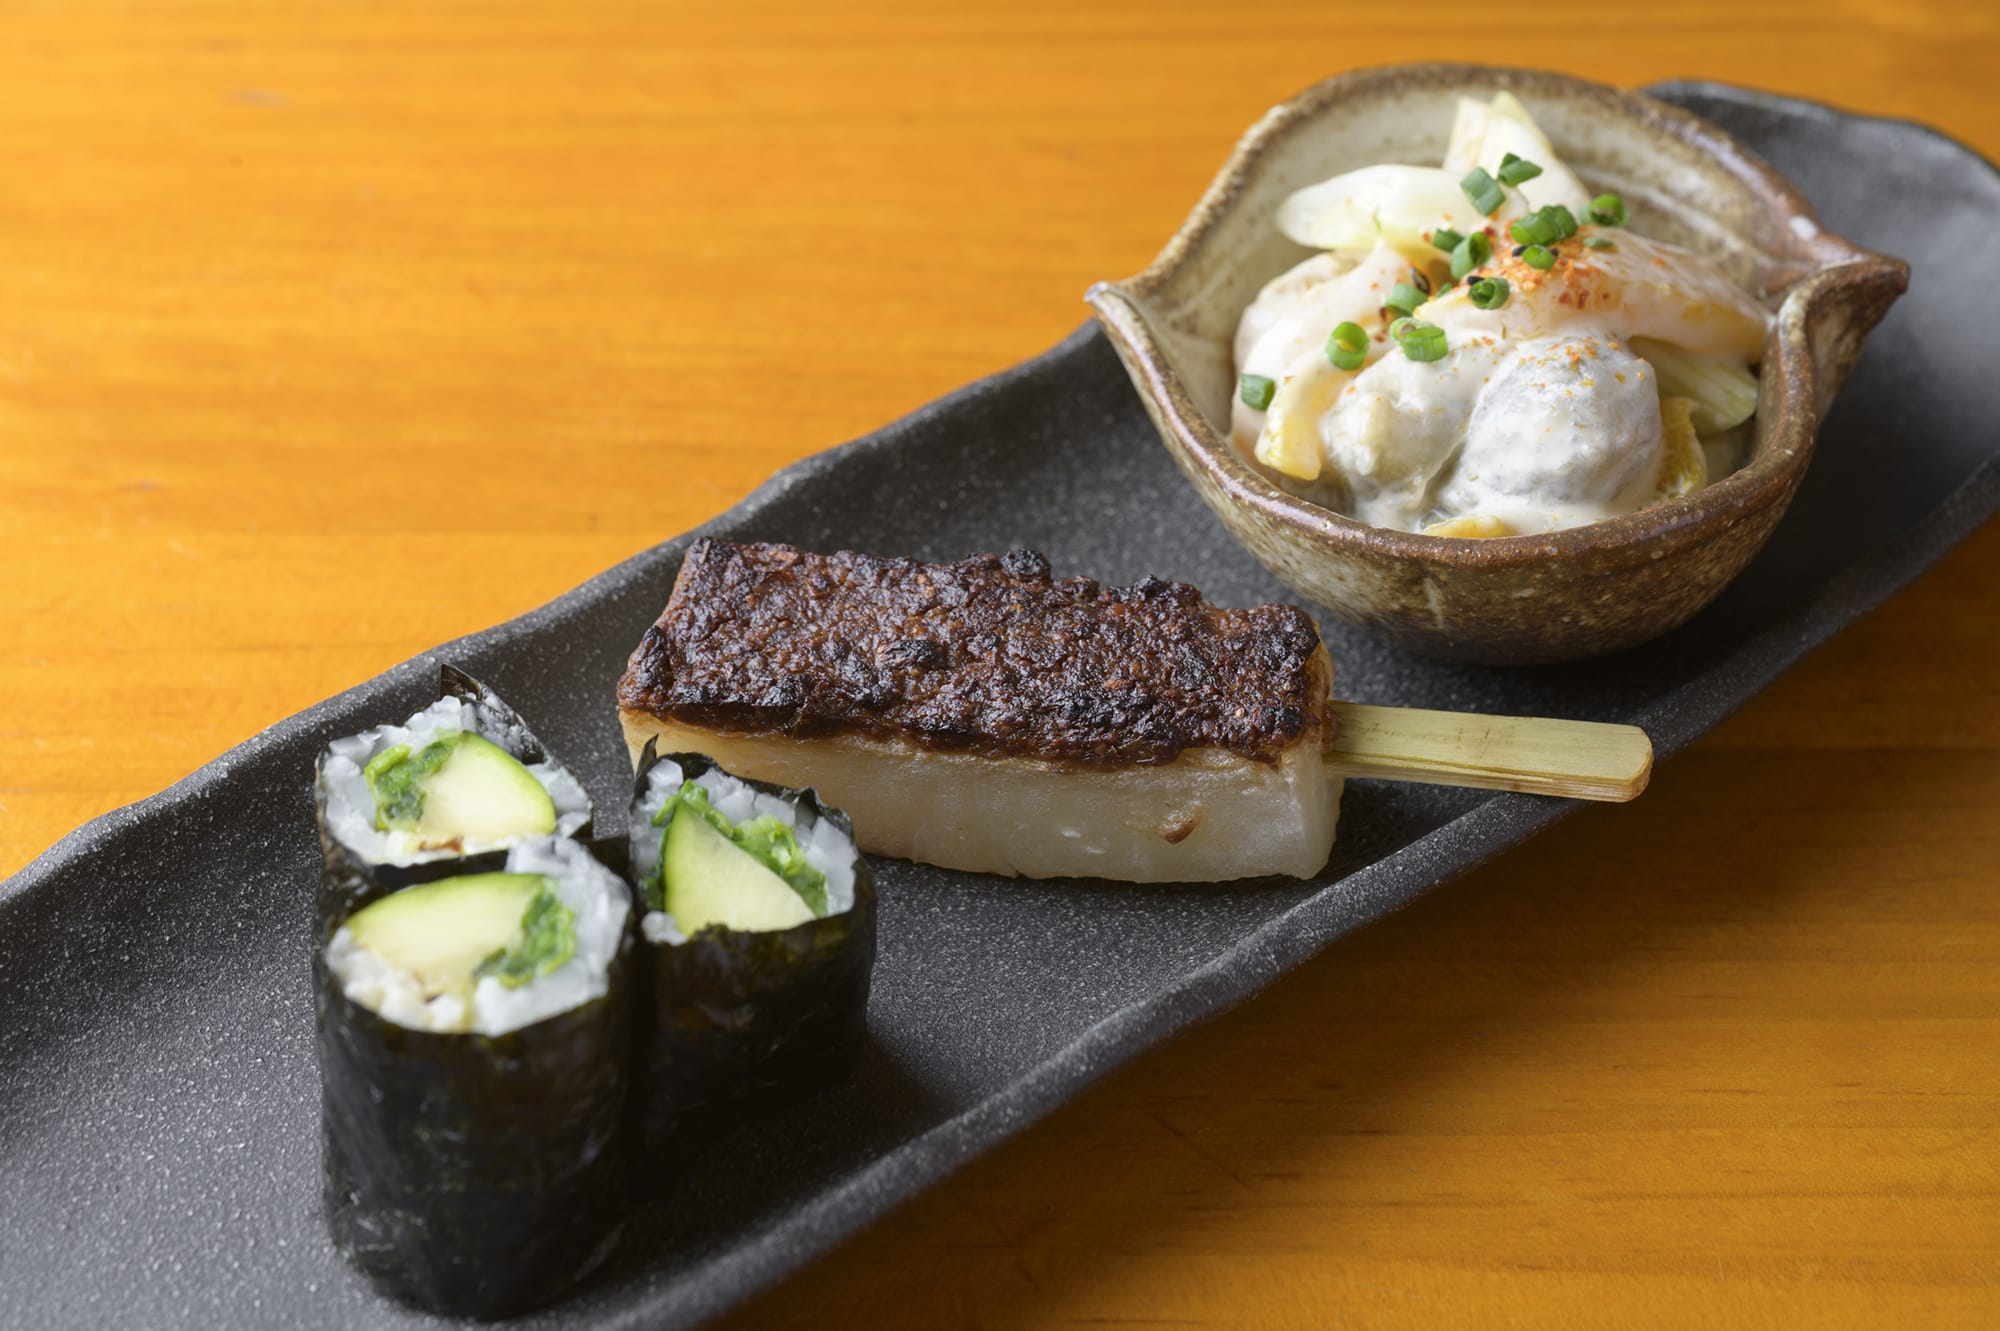 The kaiseki dish that fully brings out the sweetness and umami in vegetables.